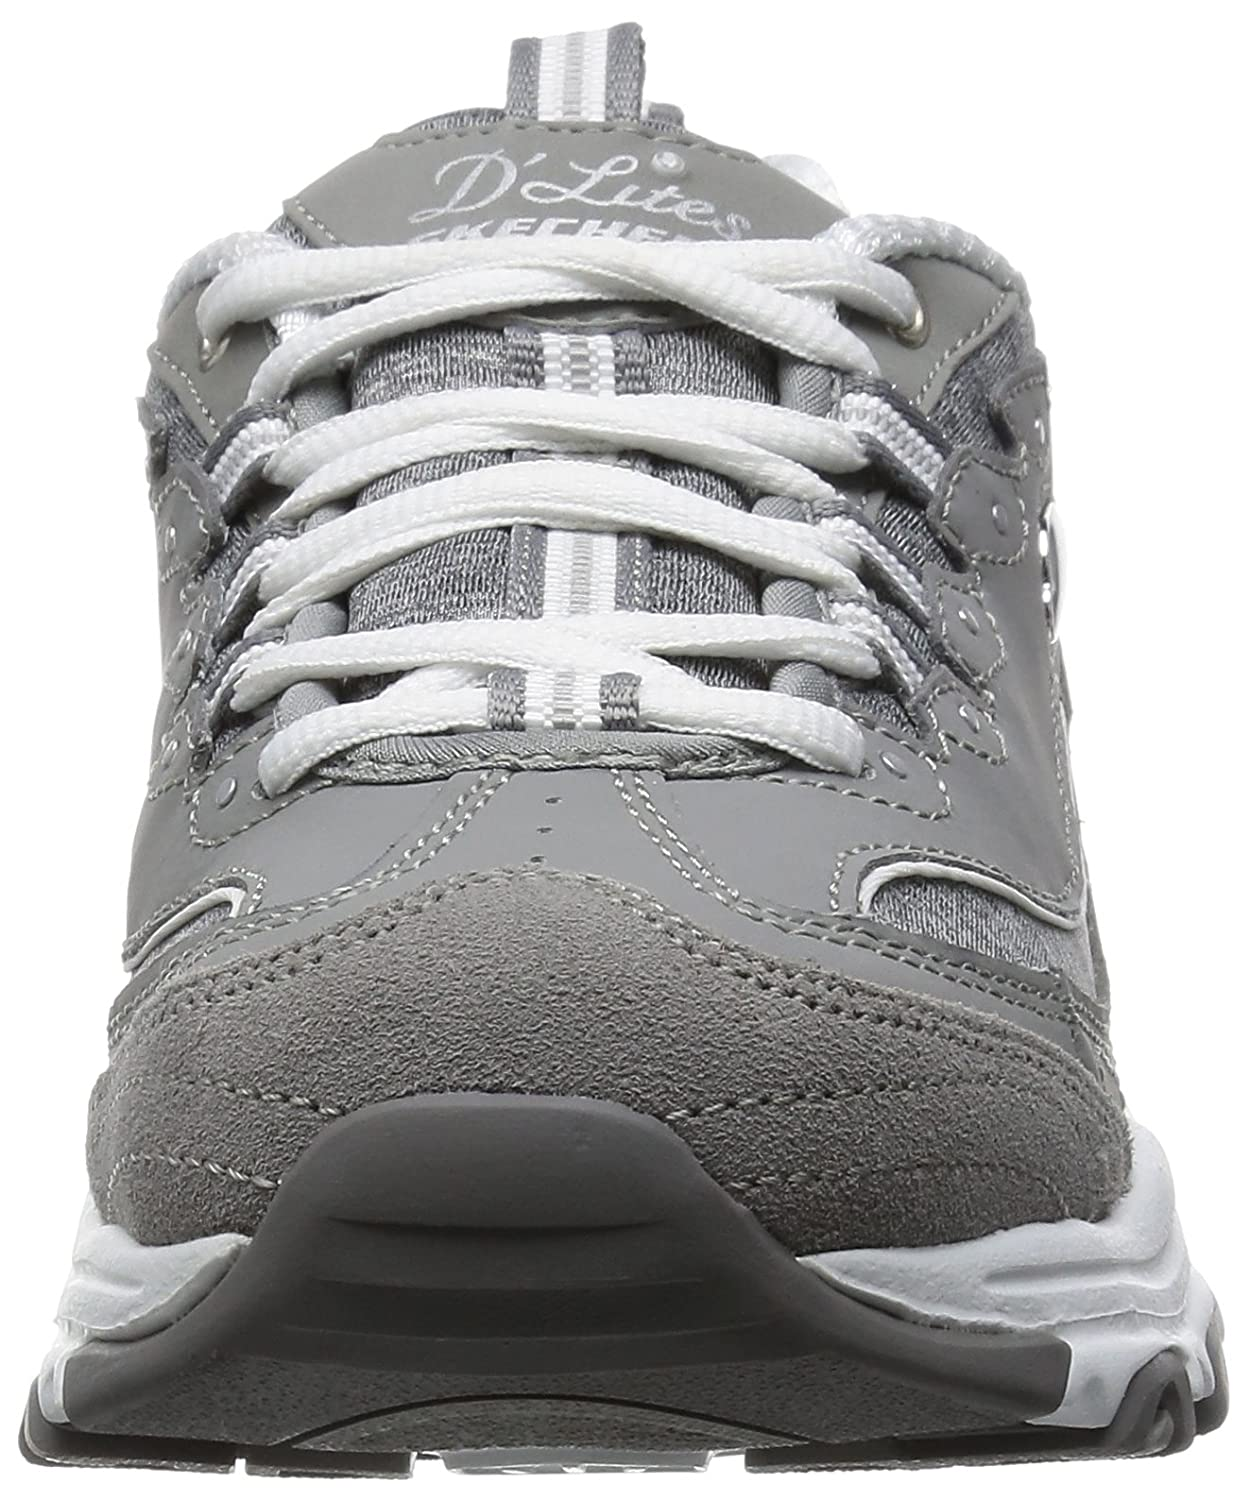 Skechers-D-039-Lites-Women-039-s-Casual-Lightweight-Fashion-Sneakers-Athletic-Shoes thumbnail 118